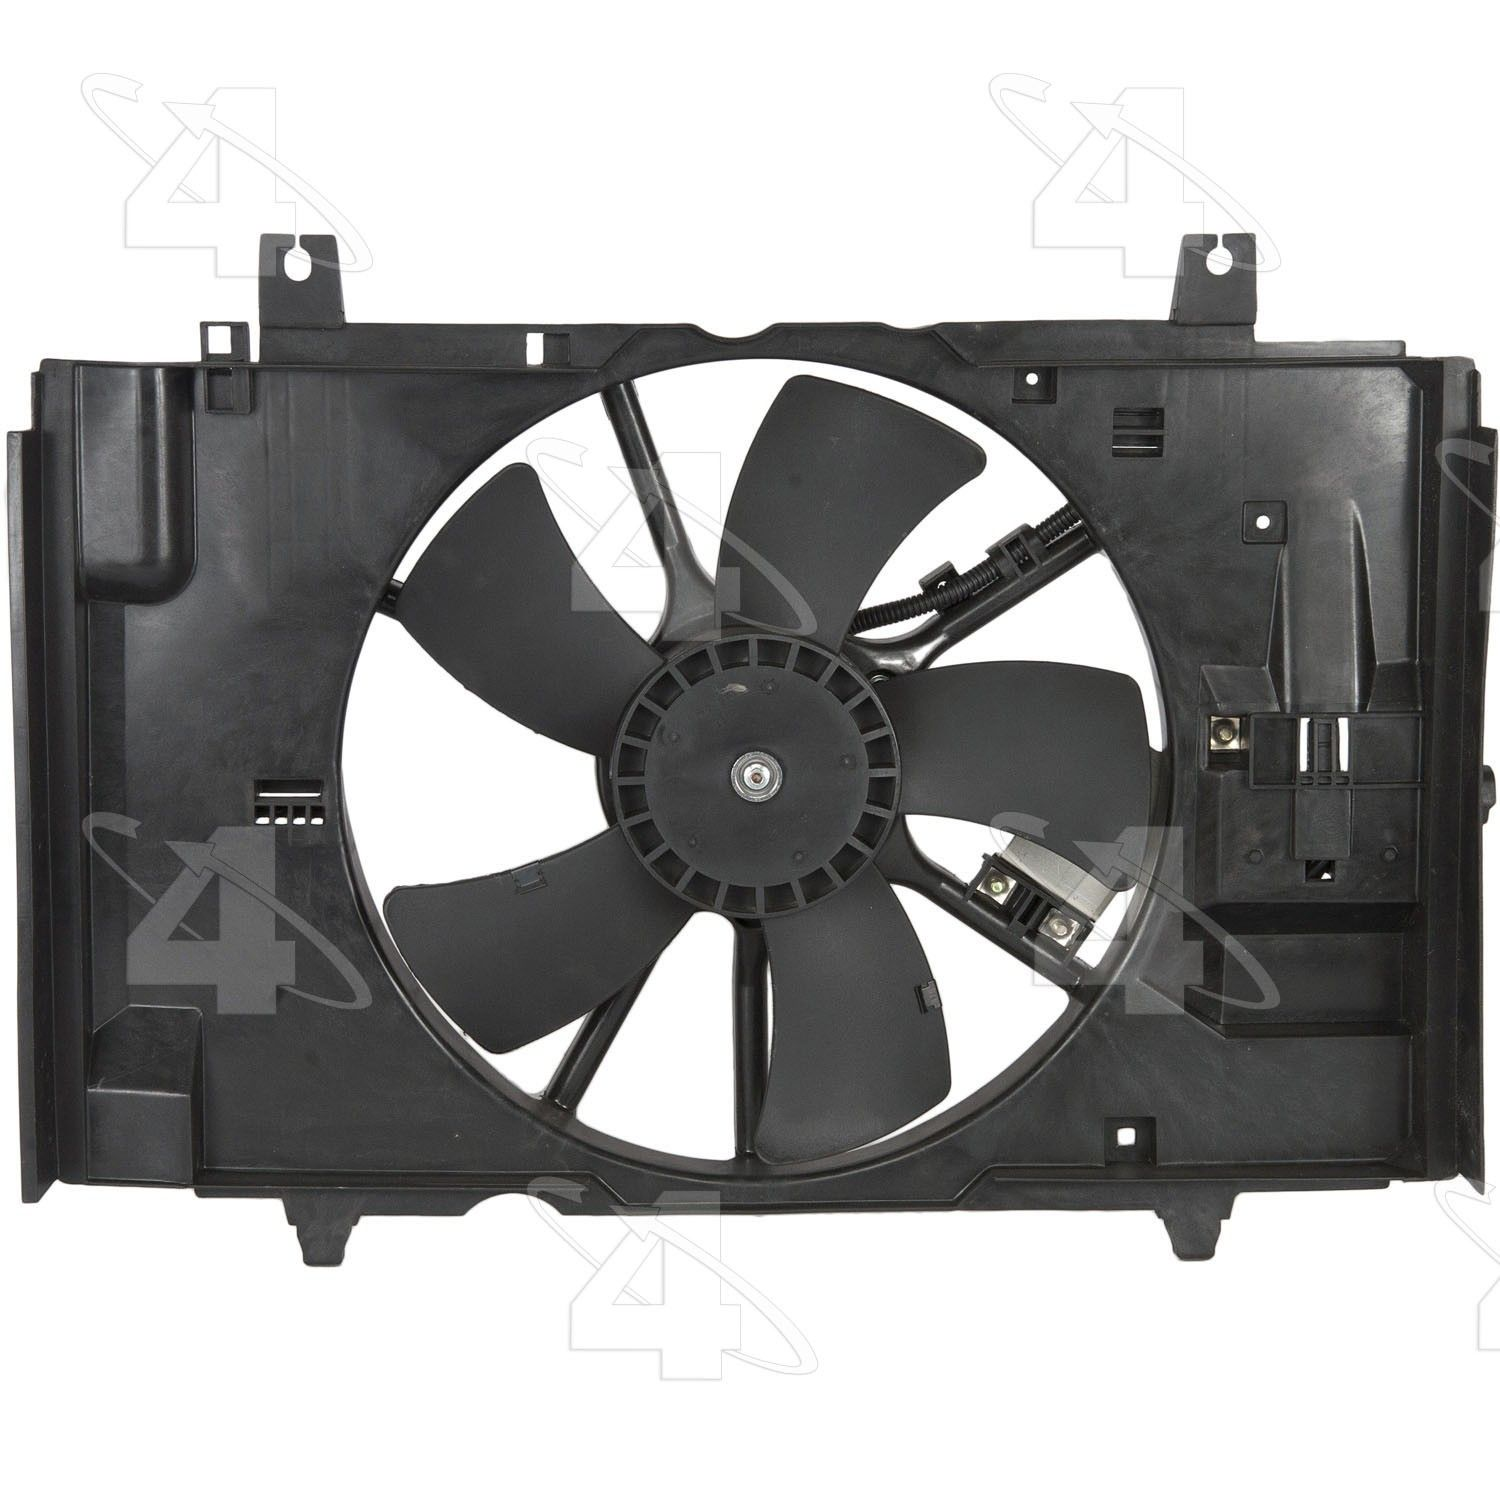 2007 Nissan Versa Engine Cooling Fan Embly Four Seasons 76201